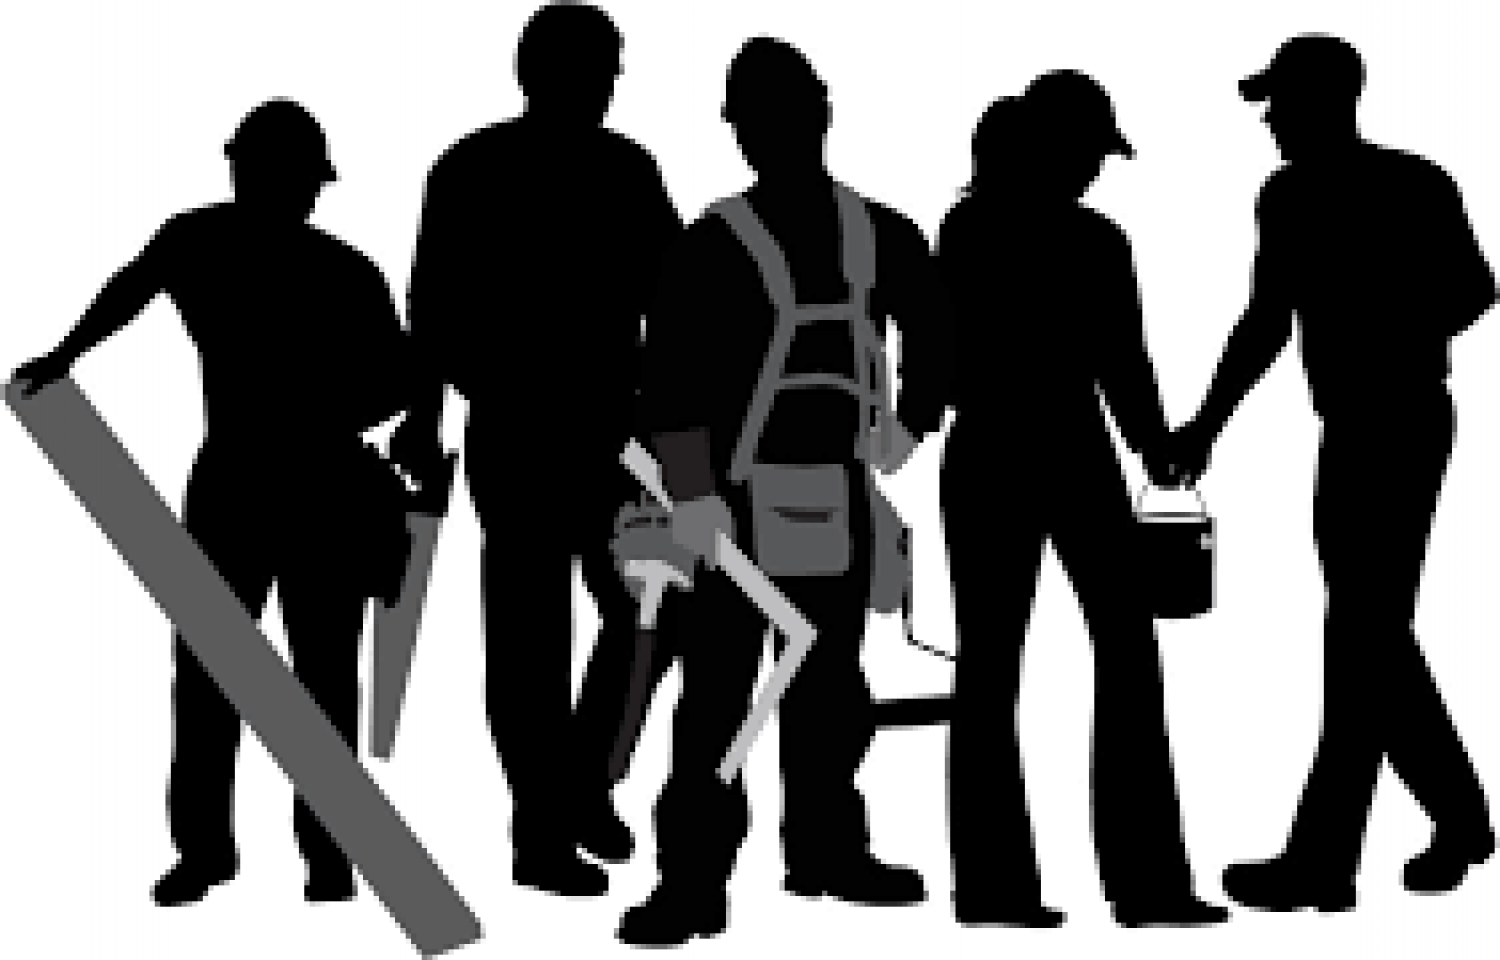 Labor clipart skilled worker. Best friend silhouette at